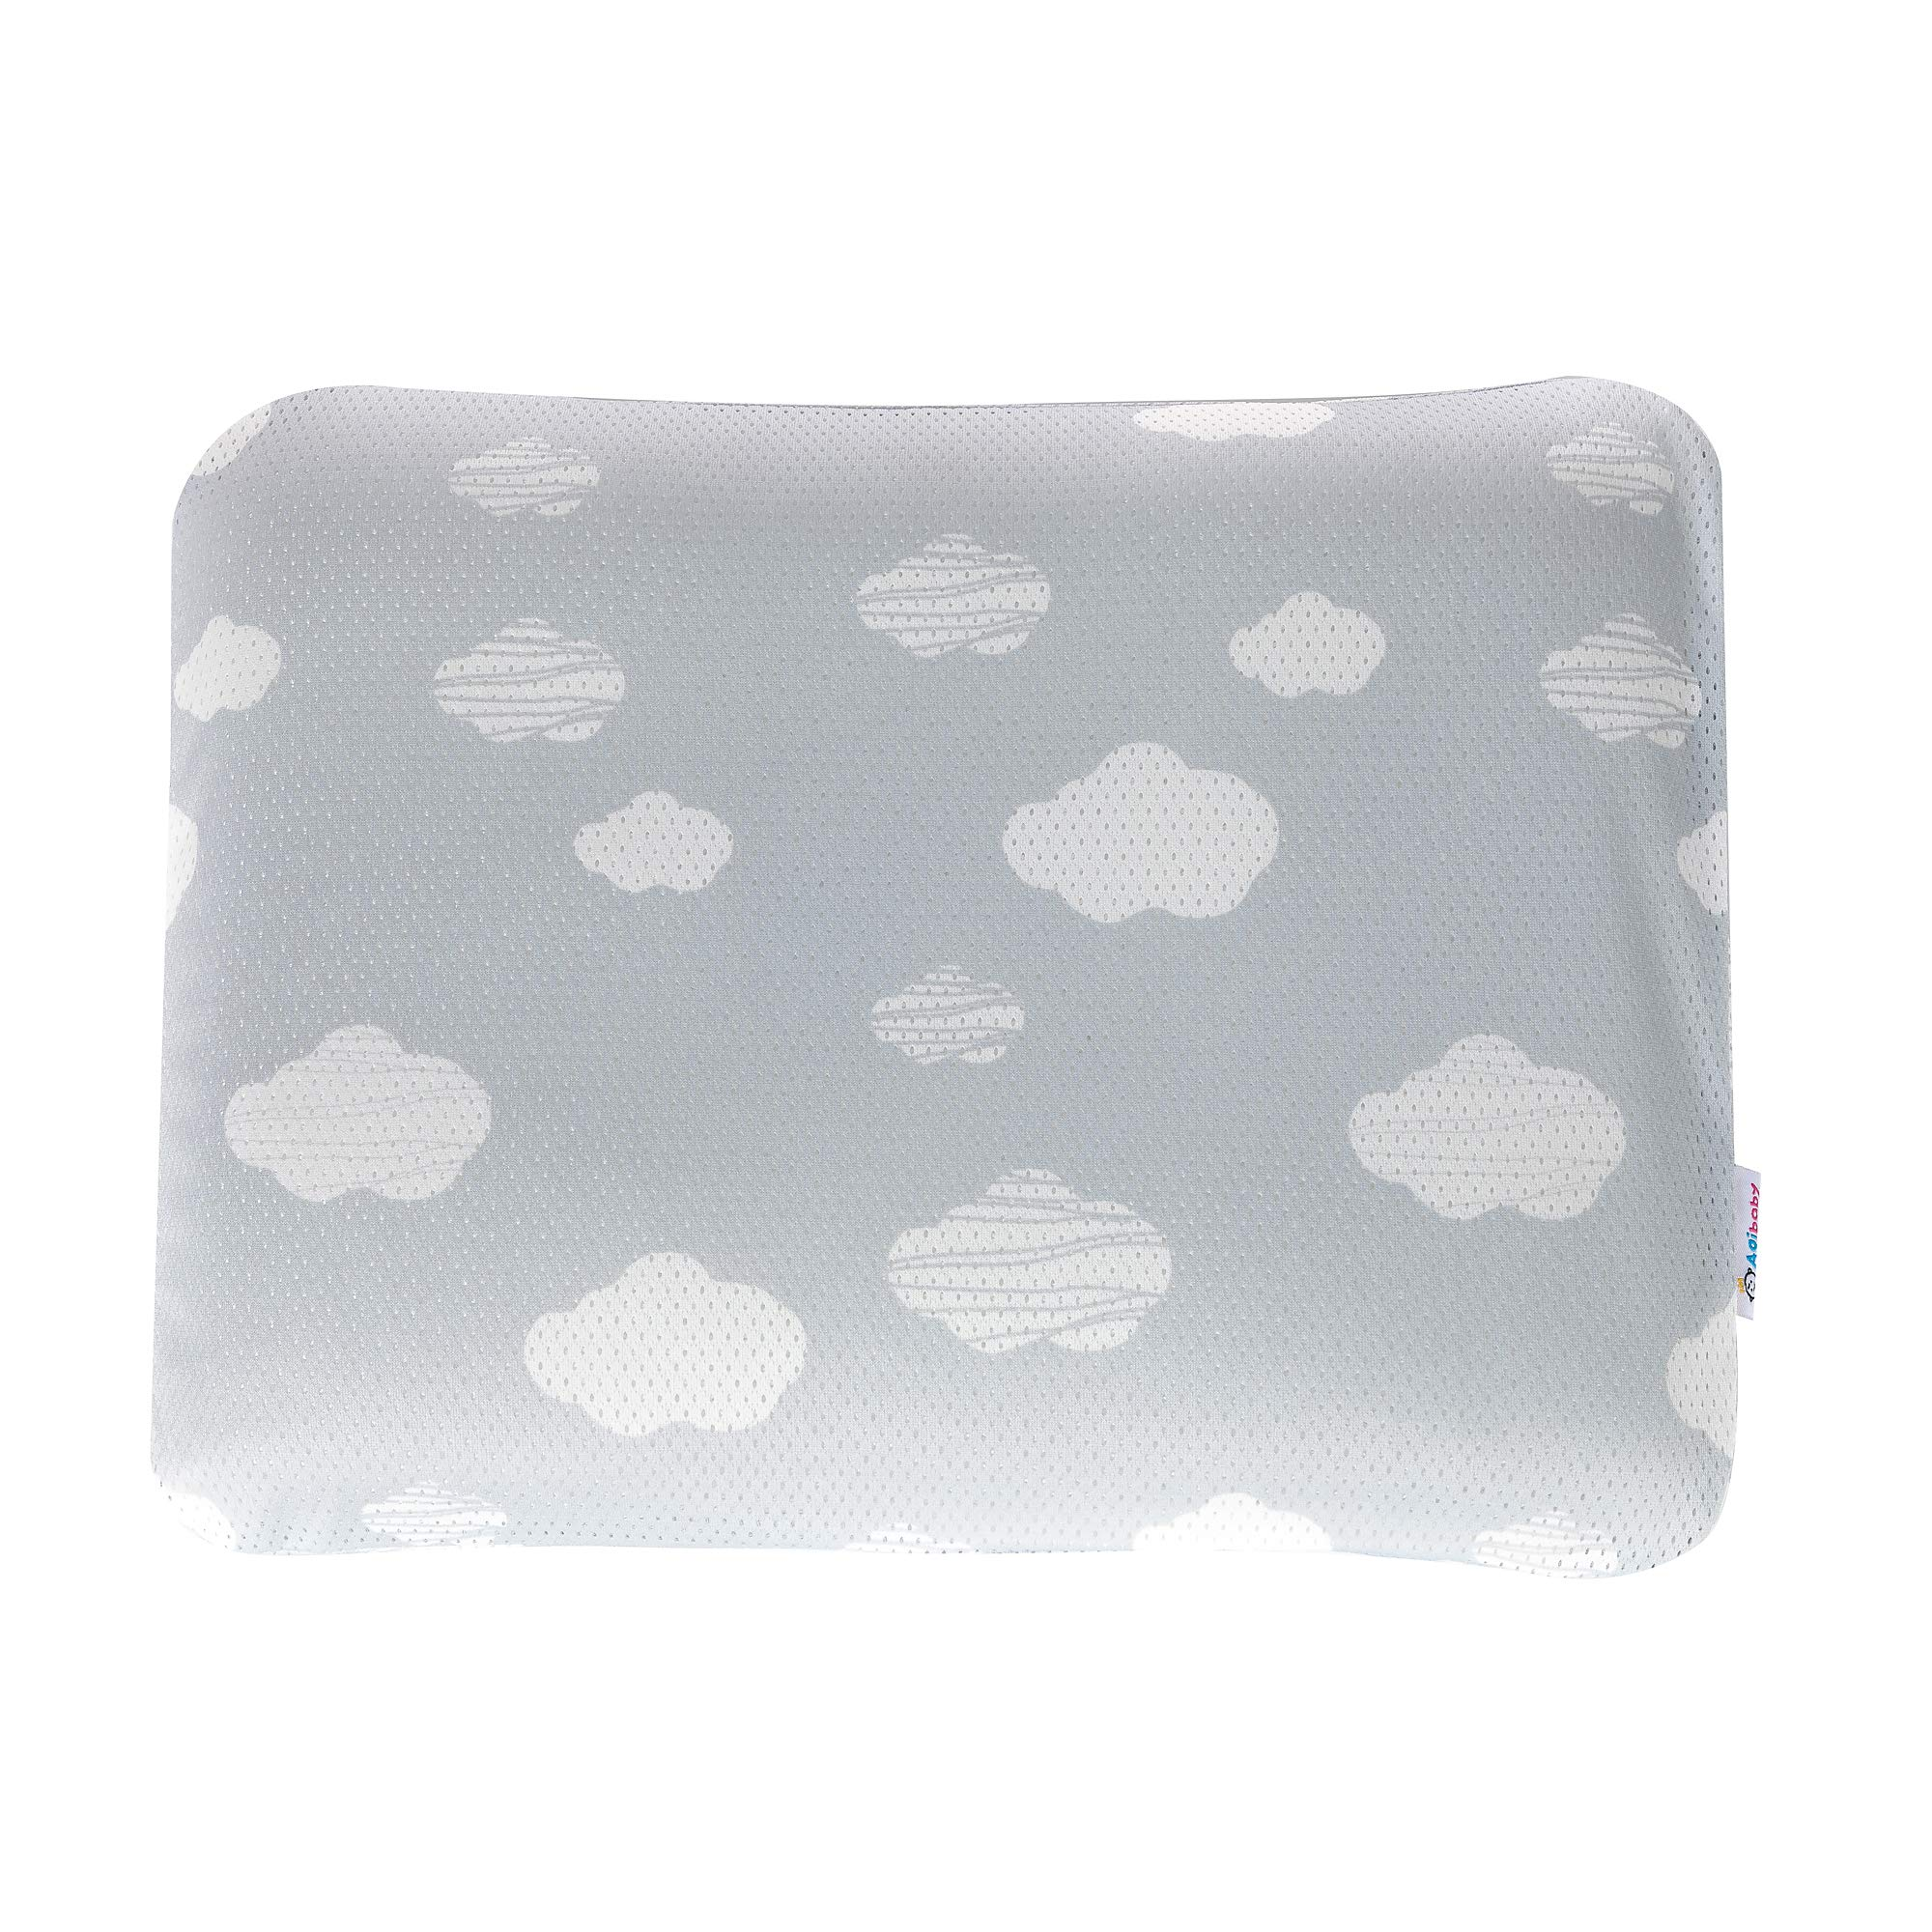 AgiBaby Hypoallergenic 3D Air Mesh Cool Pillow (Toddler Cloud)